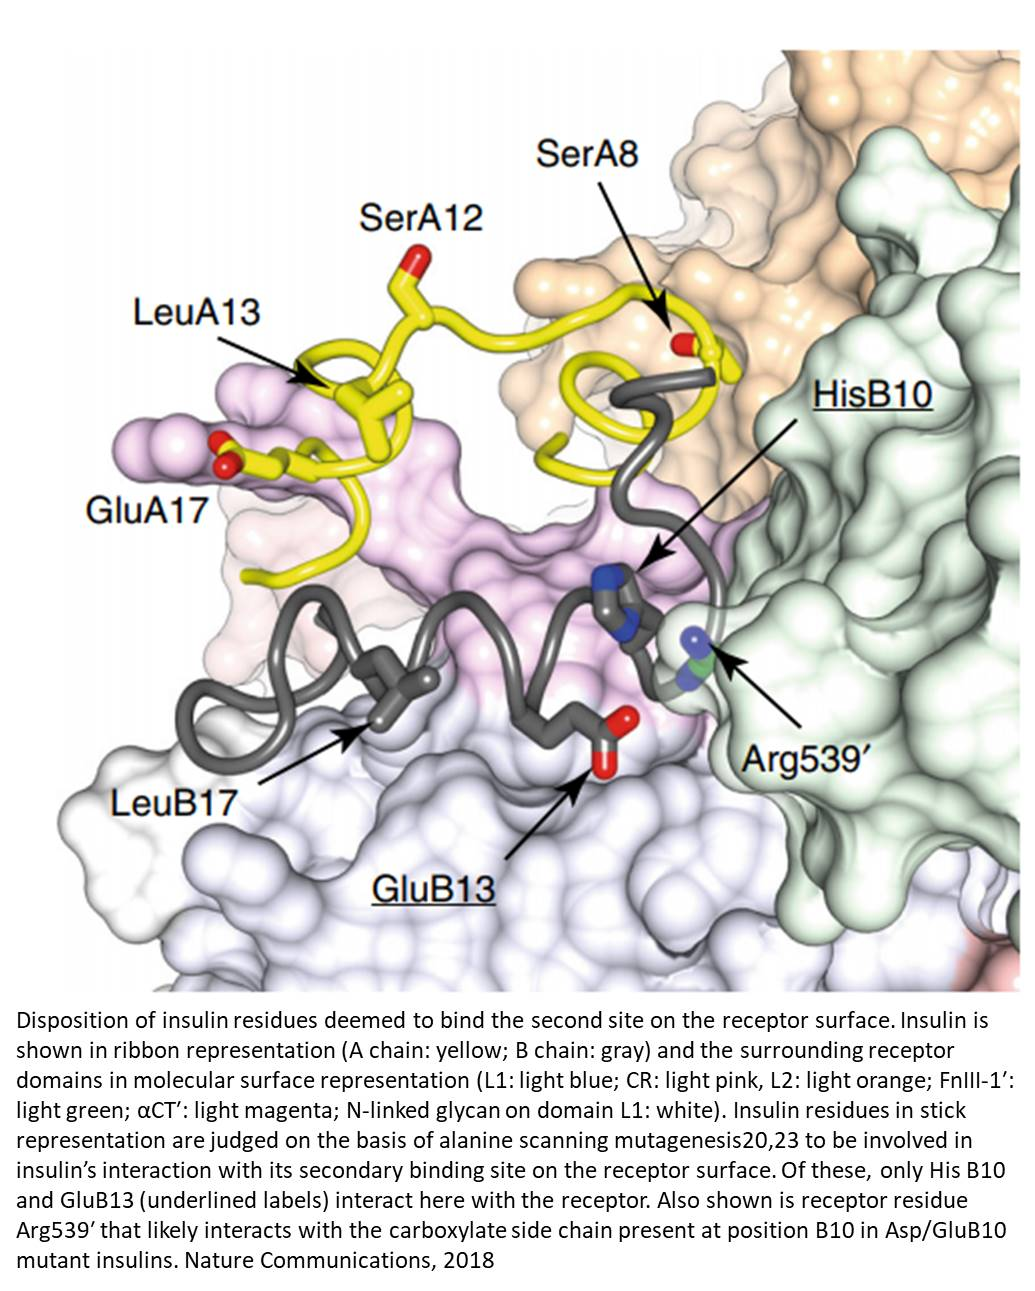 Crystal structure of insulin bound to its receptor may make insulin more effective!